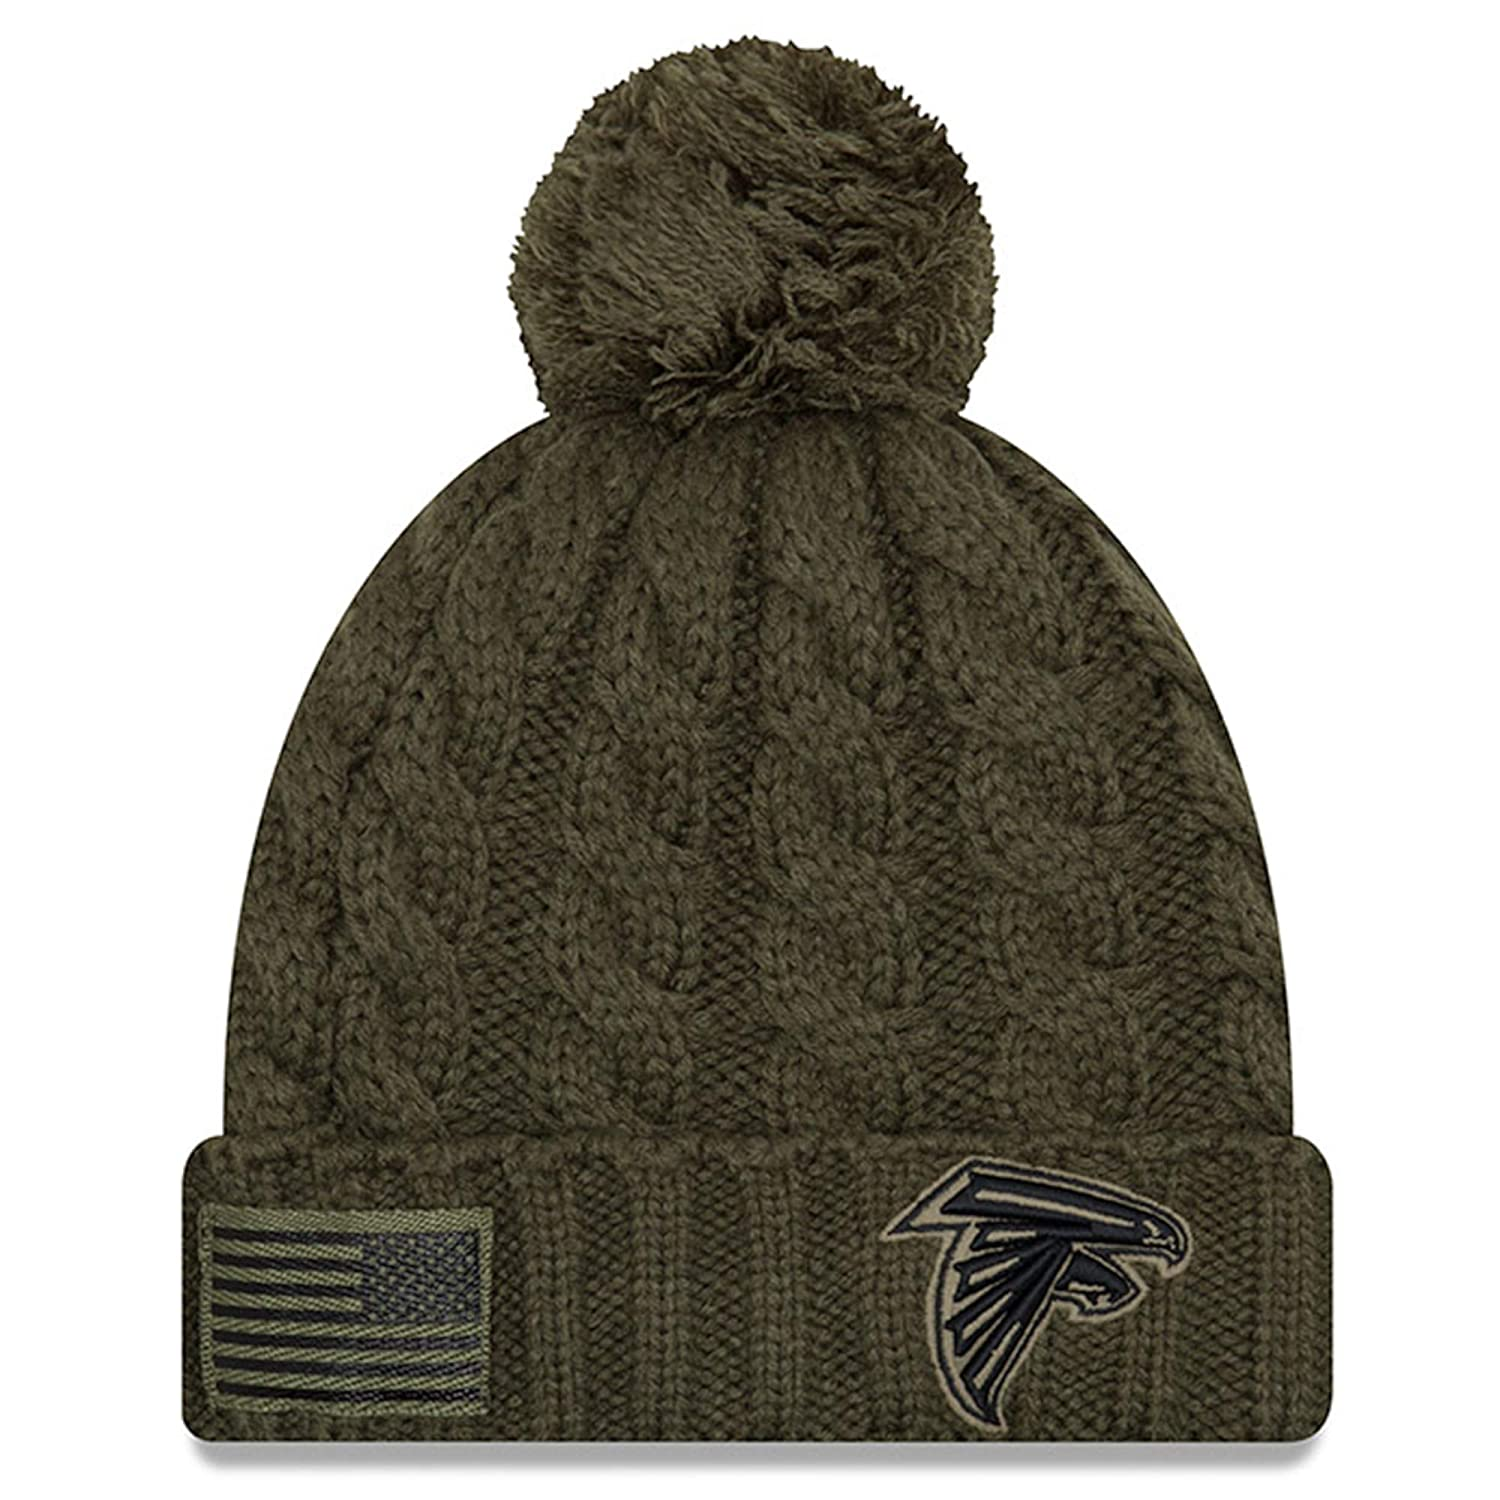 new style 69067 c45fa Amazon.com   New Era Women 2018 Salute to Service Sideline Cuffed Knit Hat  - Olive (Atlanta Falcons)   Clothing